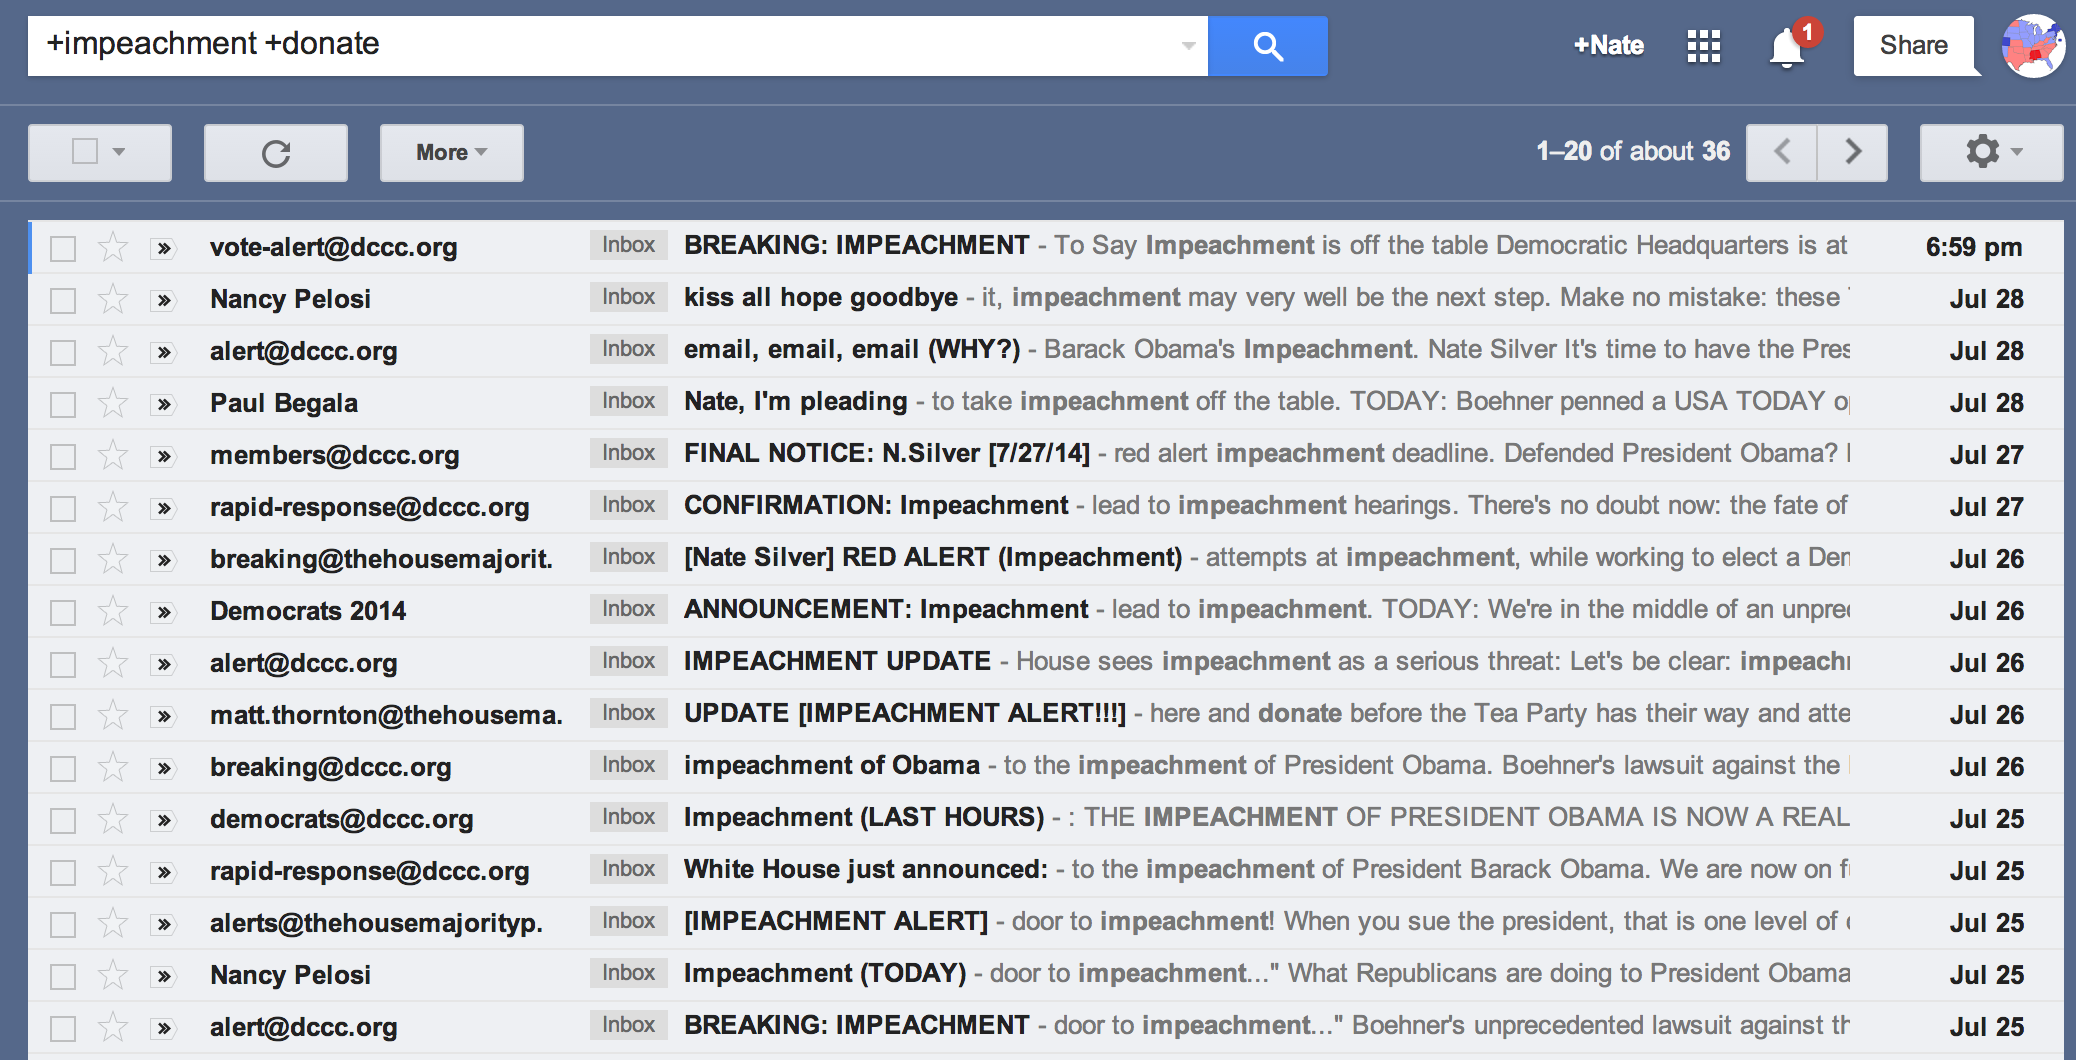 Nate Silver's inbox